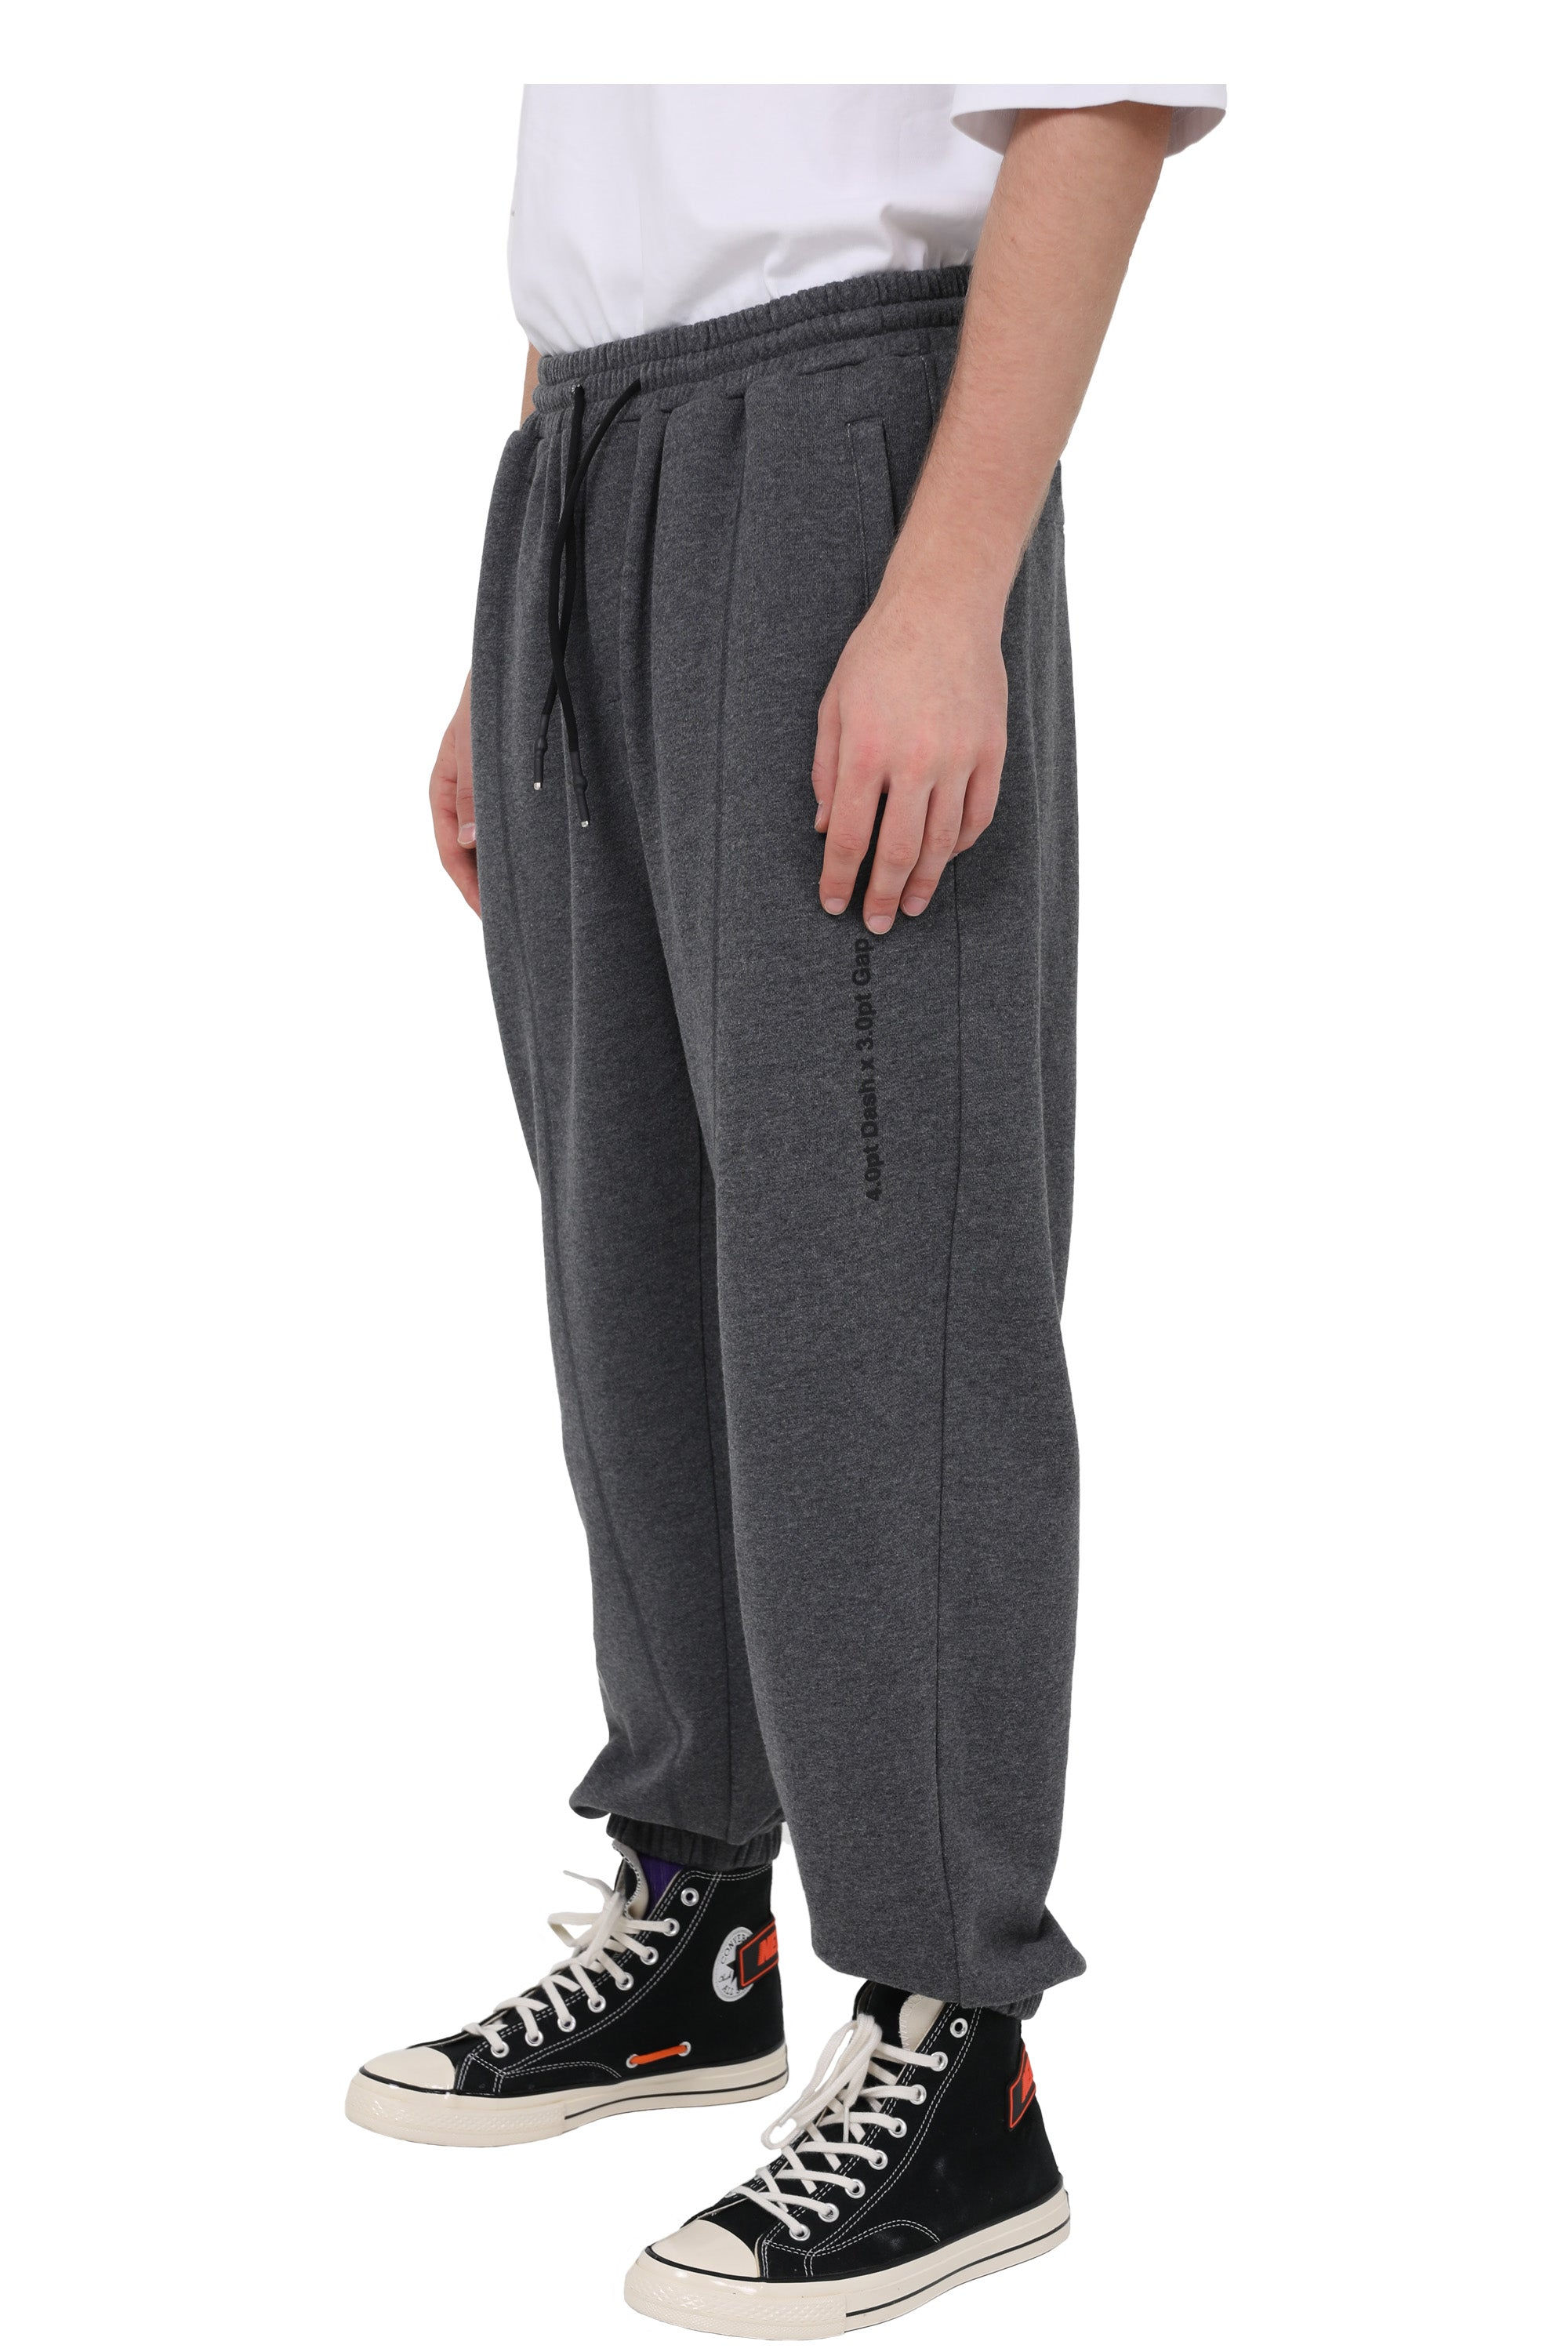 PLAIN JANE JOGGERS | DARK MELANGE